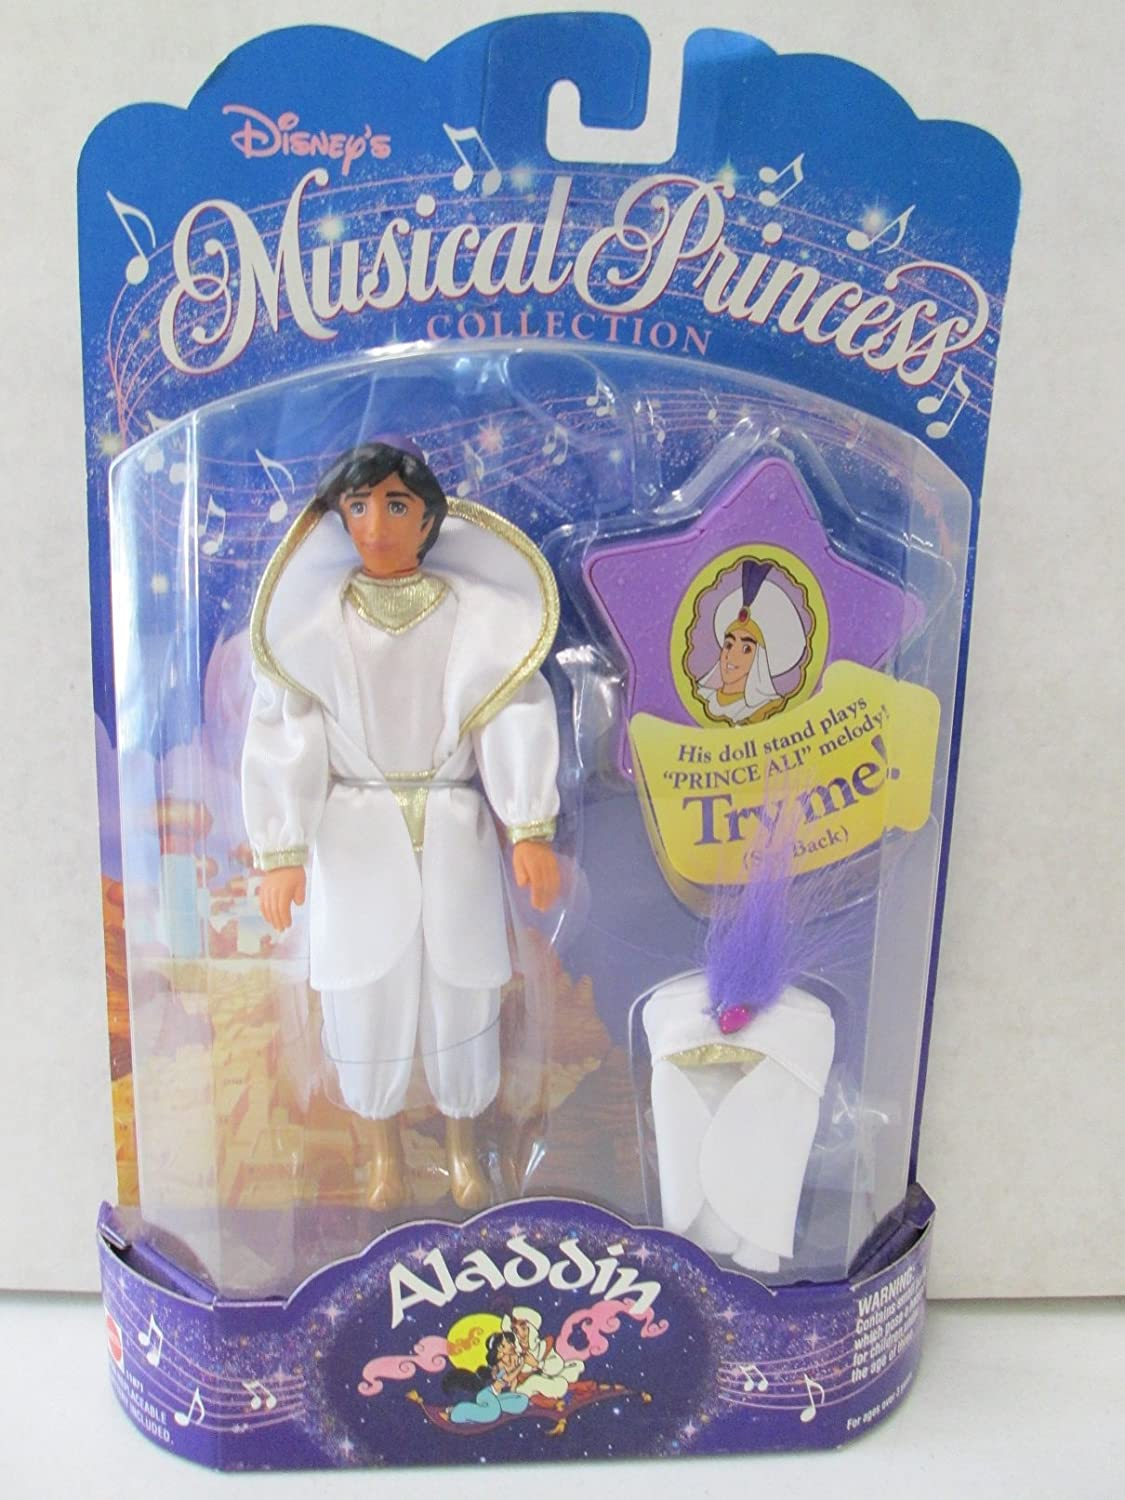 1994 Disney's Musical Princess Collection 7 Aladdin Prince Figure Doll- Plays Prince Ali Melody original aladdin and the magic lamp action figures toy aladdin jasmine princess model doll